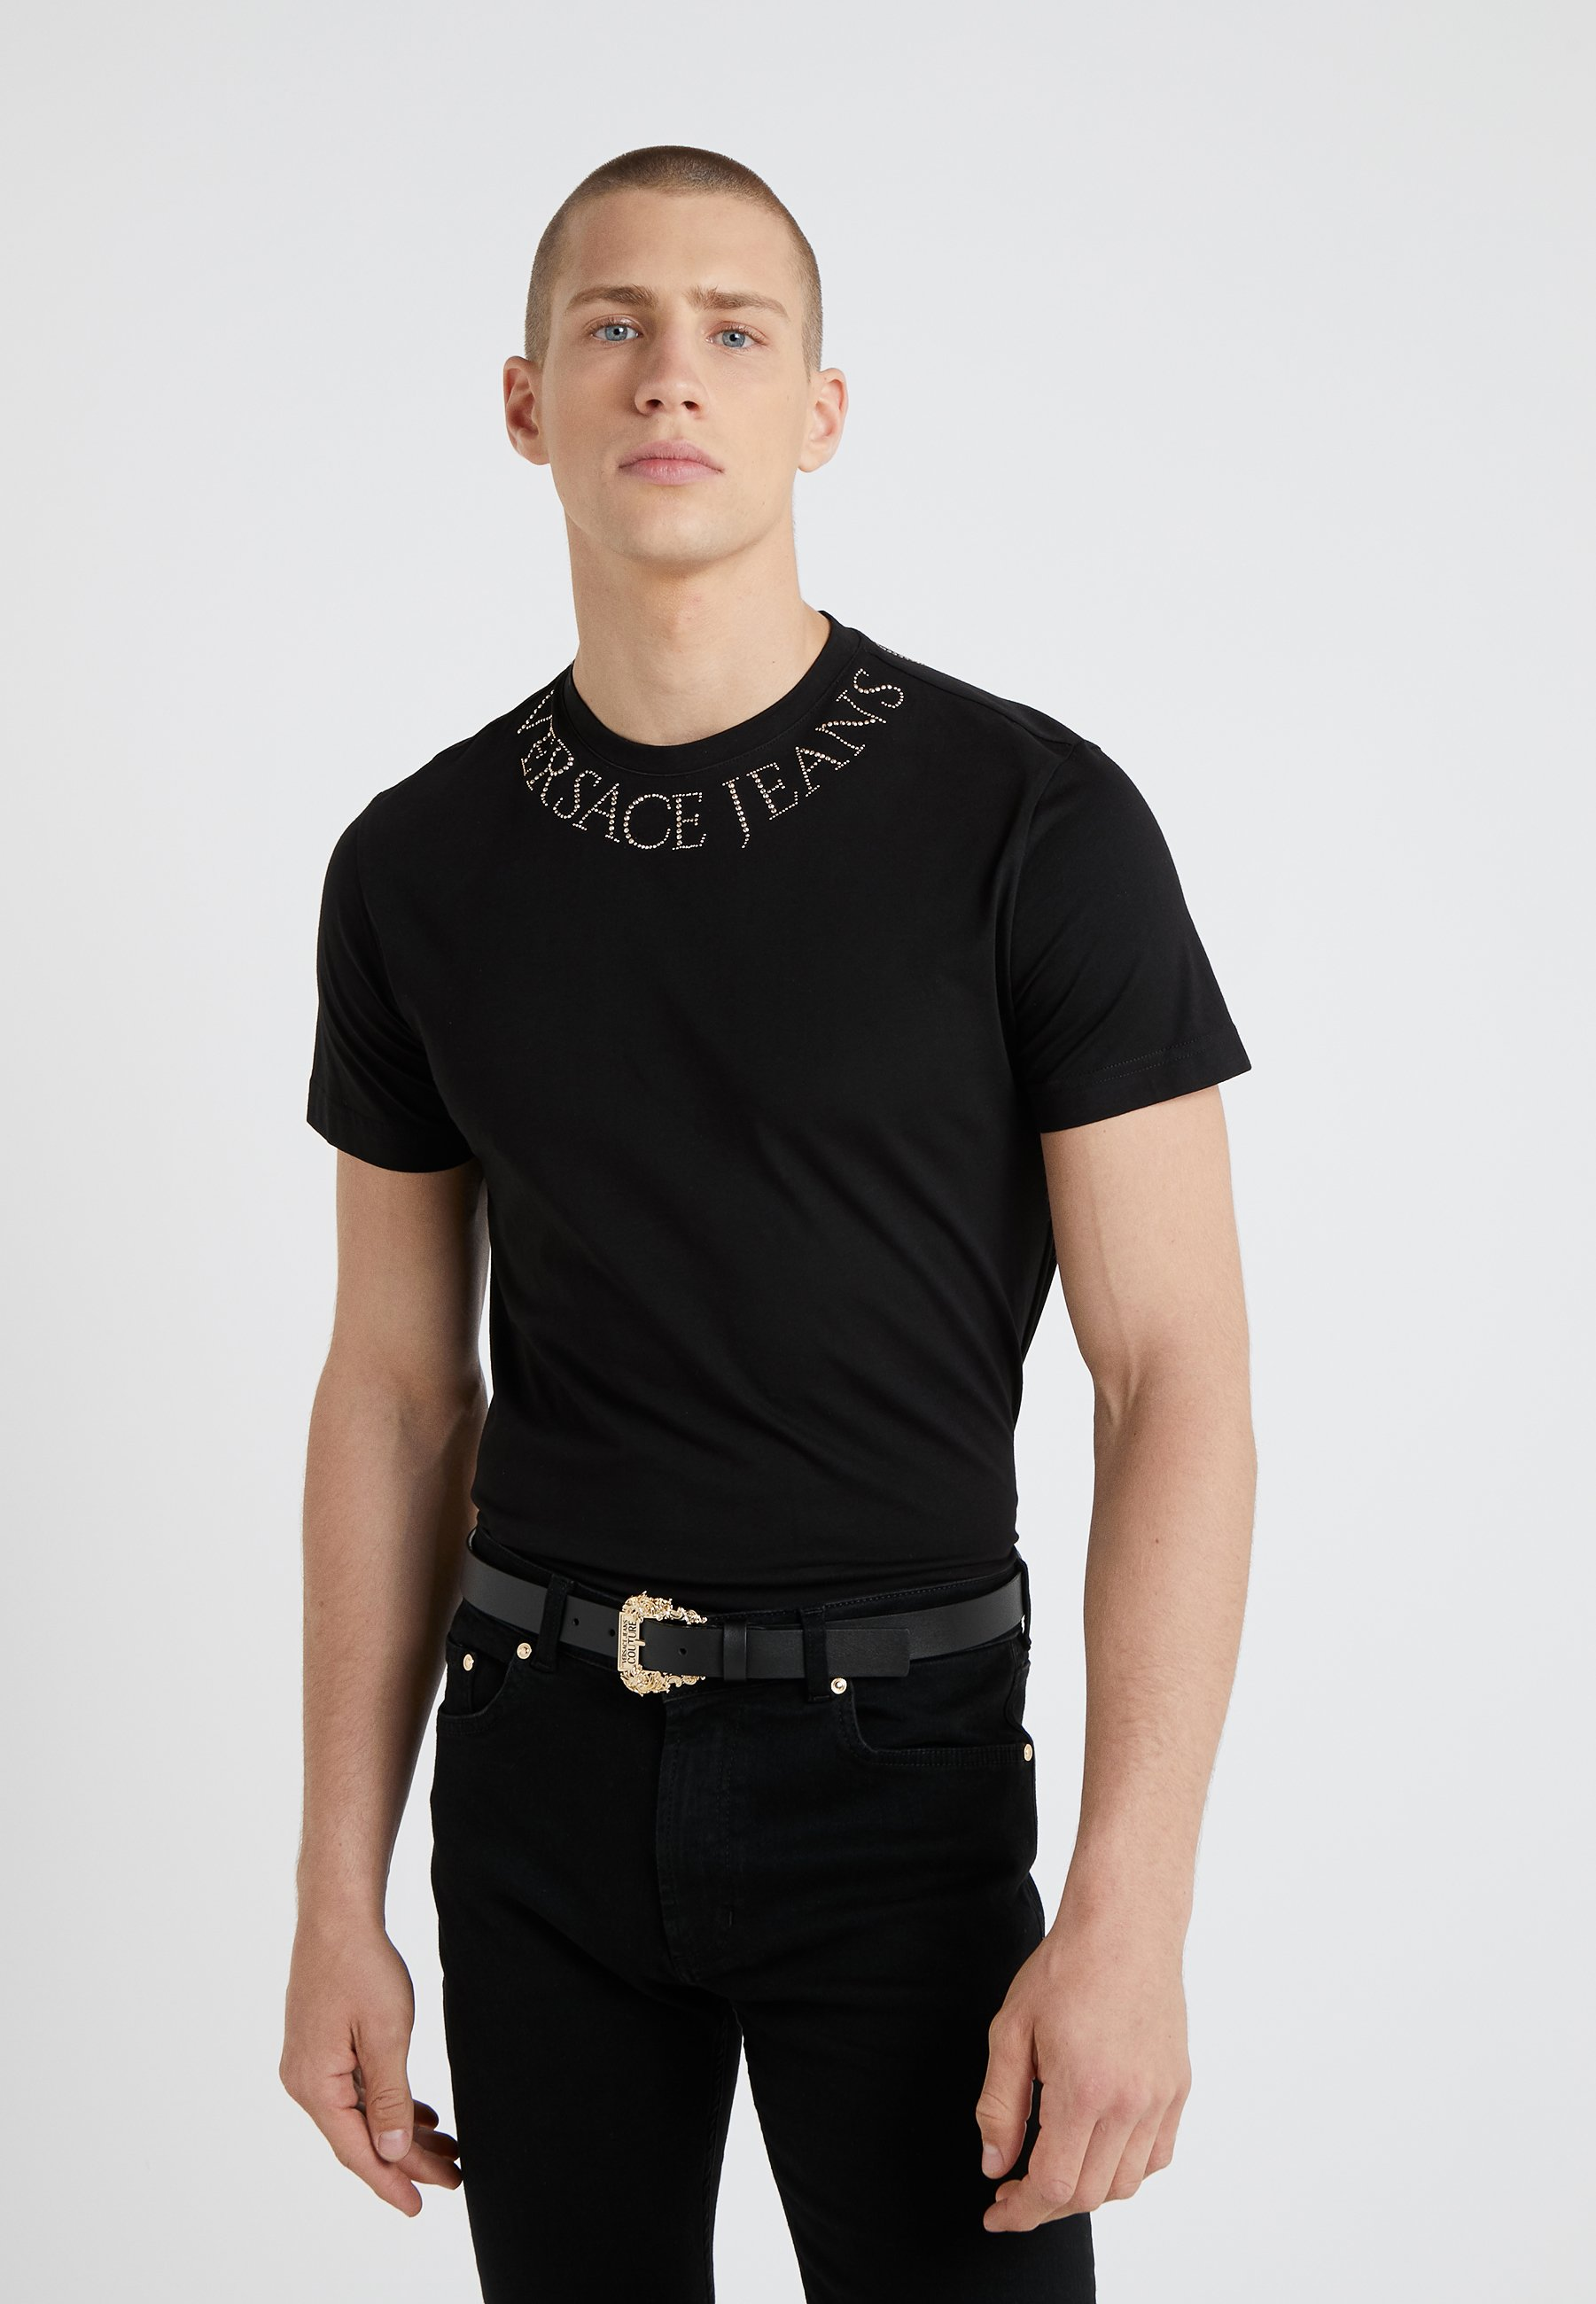 Jeans Nero Couture Versace shirt Con MaglietteT Stampa Yybvf76g